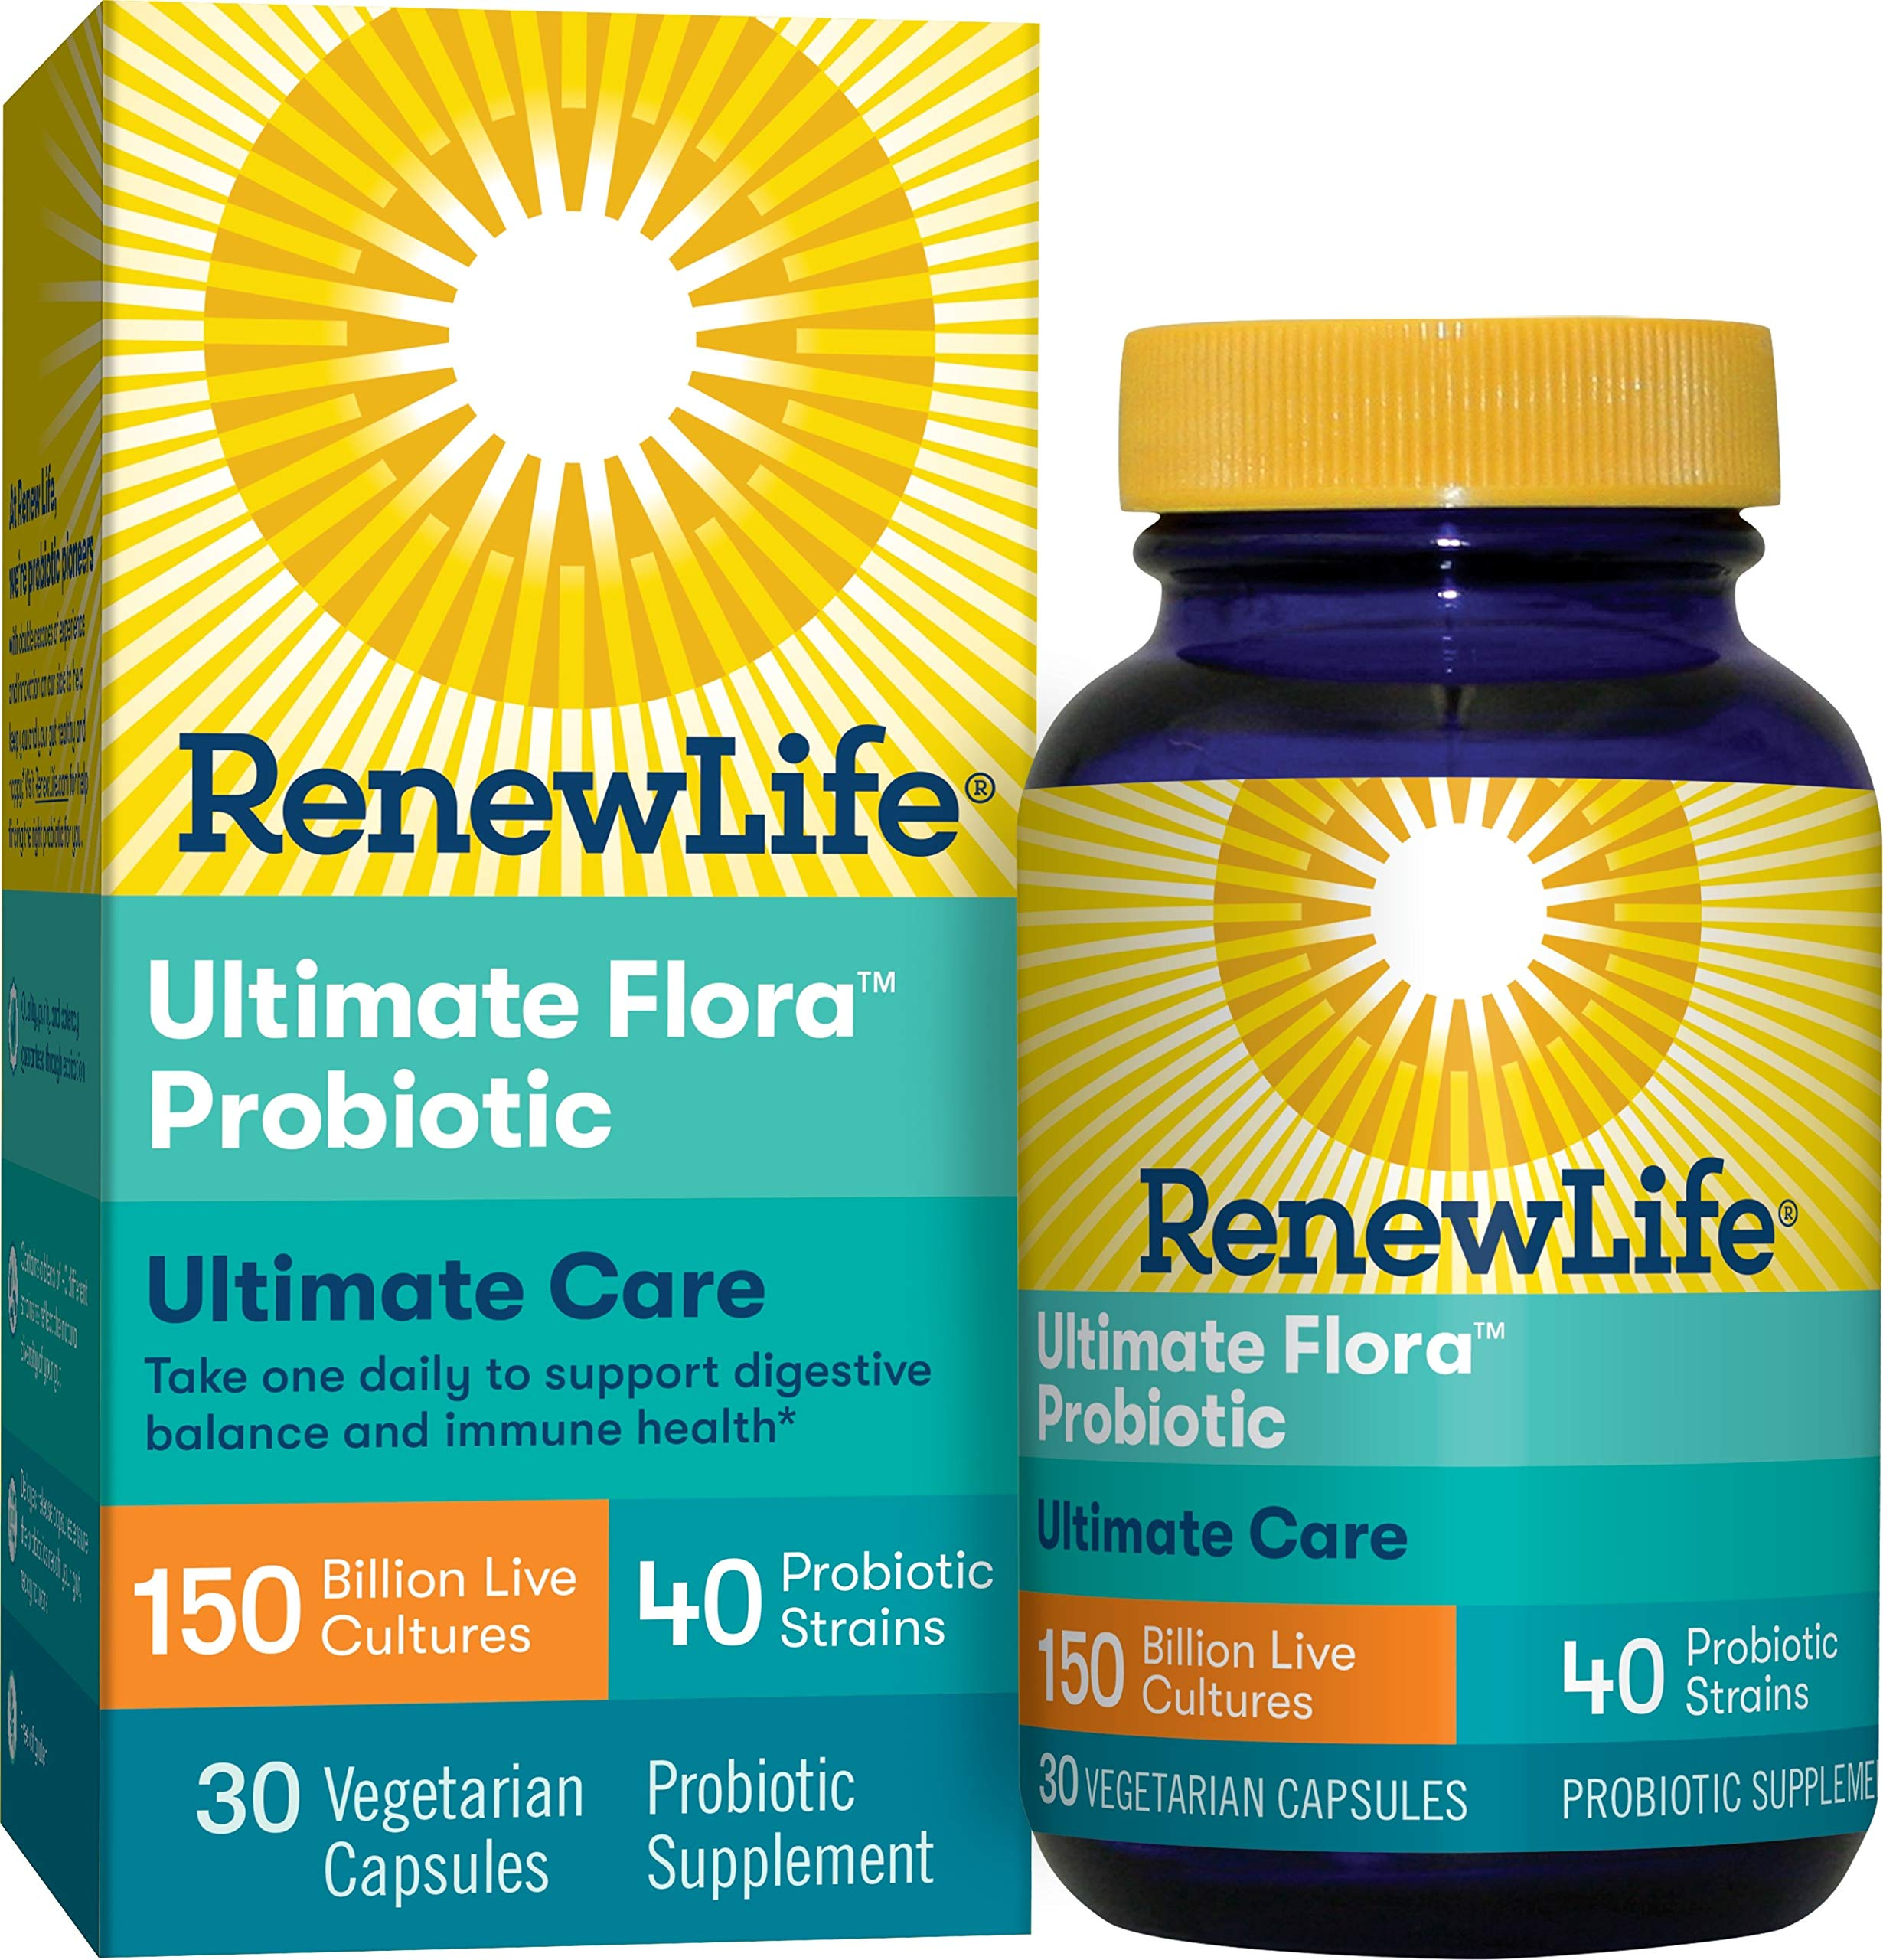 Renew Life Adult Probiotic - Ultimate Flora Ultimate Care Probiotic Supplement - Gluten, Dairy & Soy Free - 150 Billion CFU - 30 Vegetarian Capsules by Renew Life